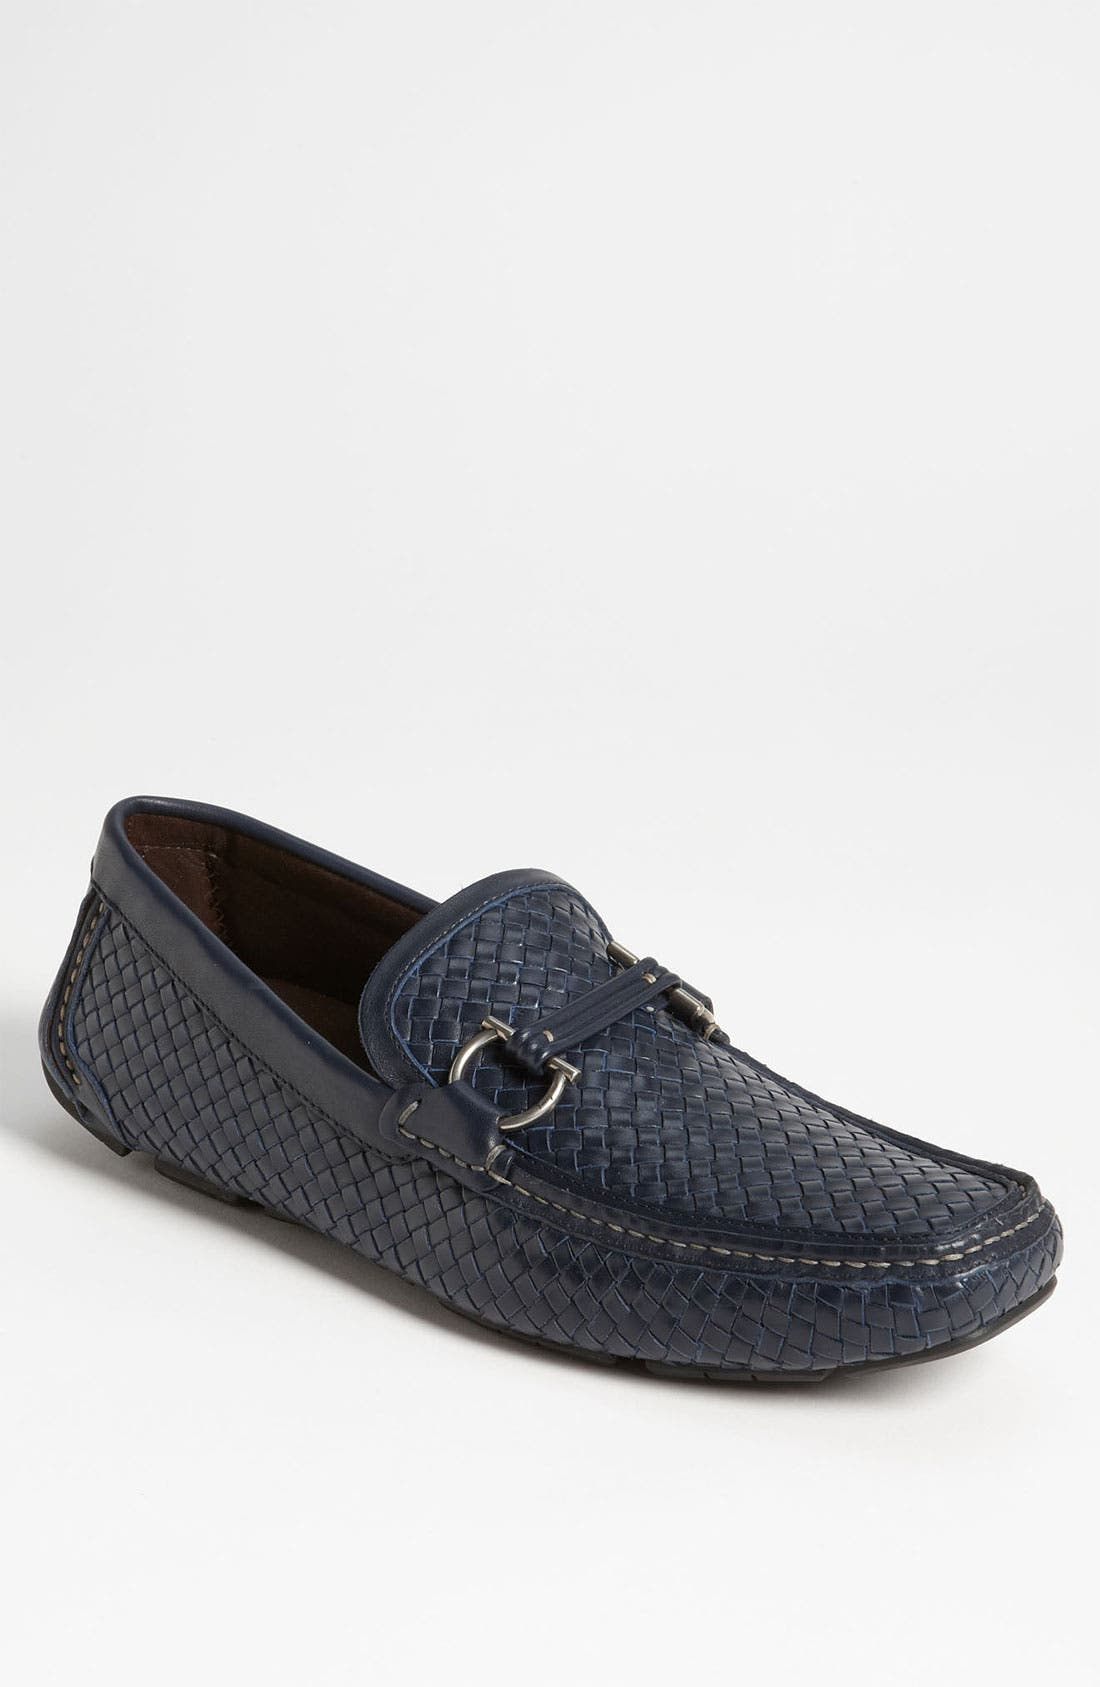 Alternate Image 1 Selected - Salvatore Ferragamo 'Barbados' Loafer